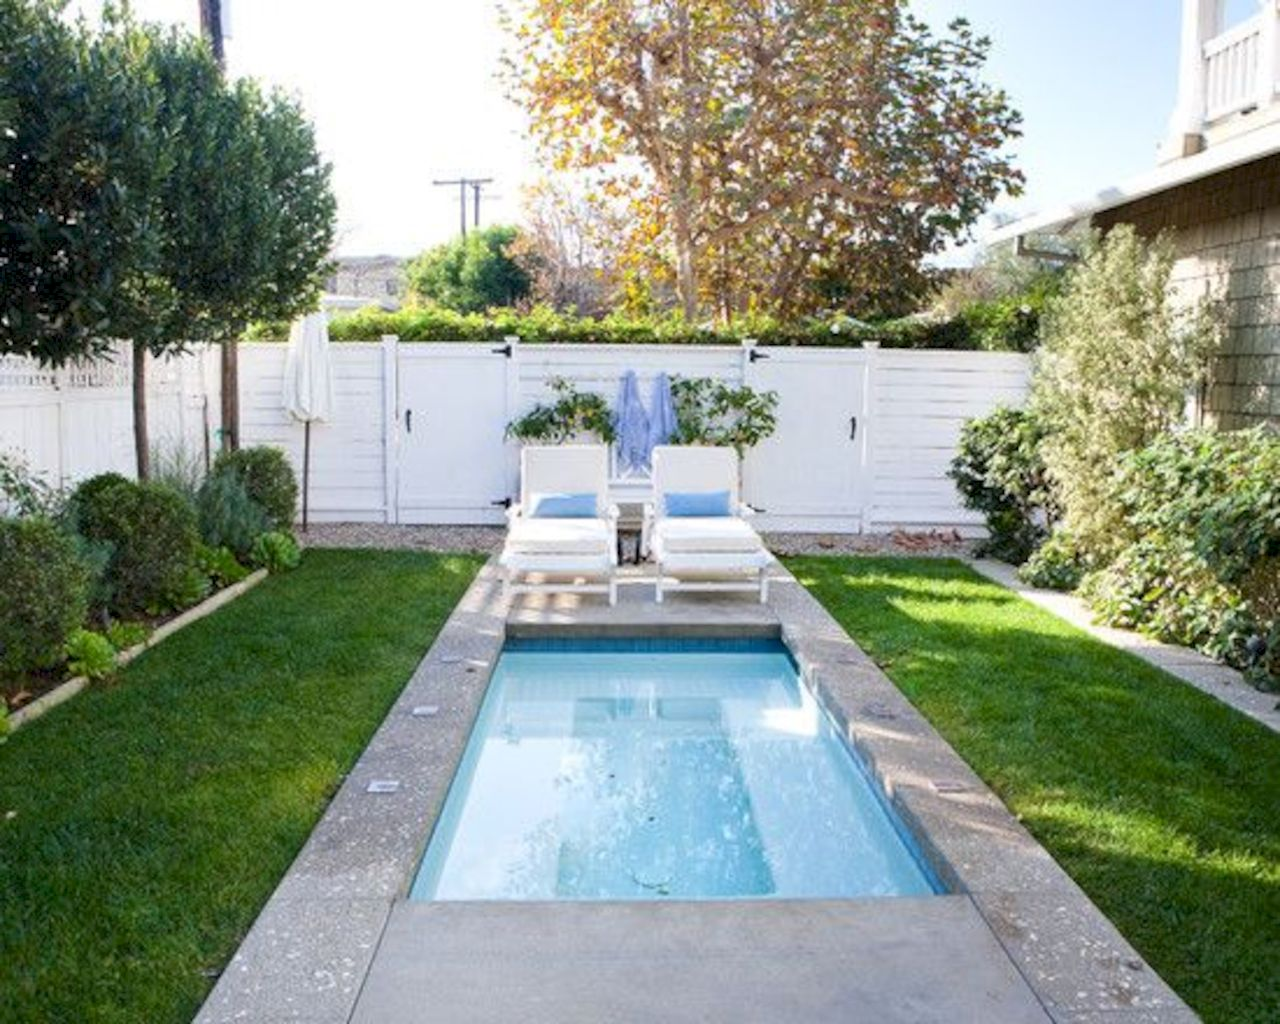 Affordable rectangular pool designs built in small areas that give a lavish look getting along with beautiful landscape (38)